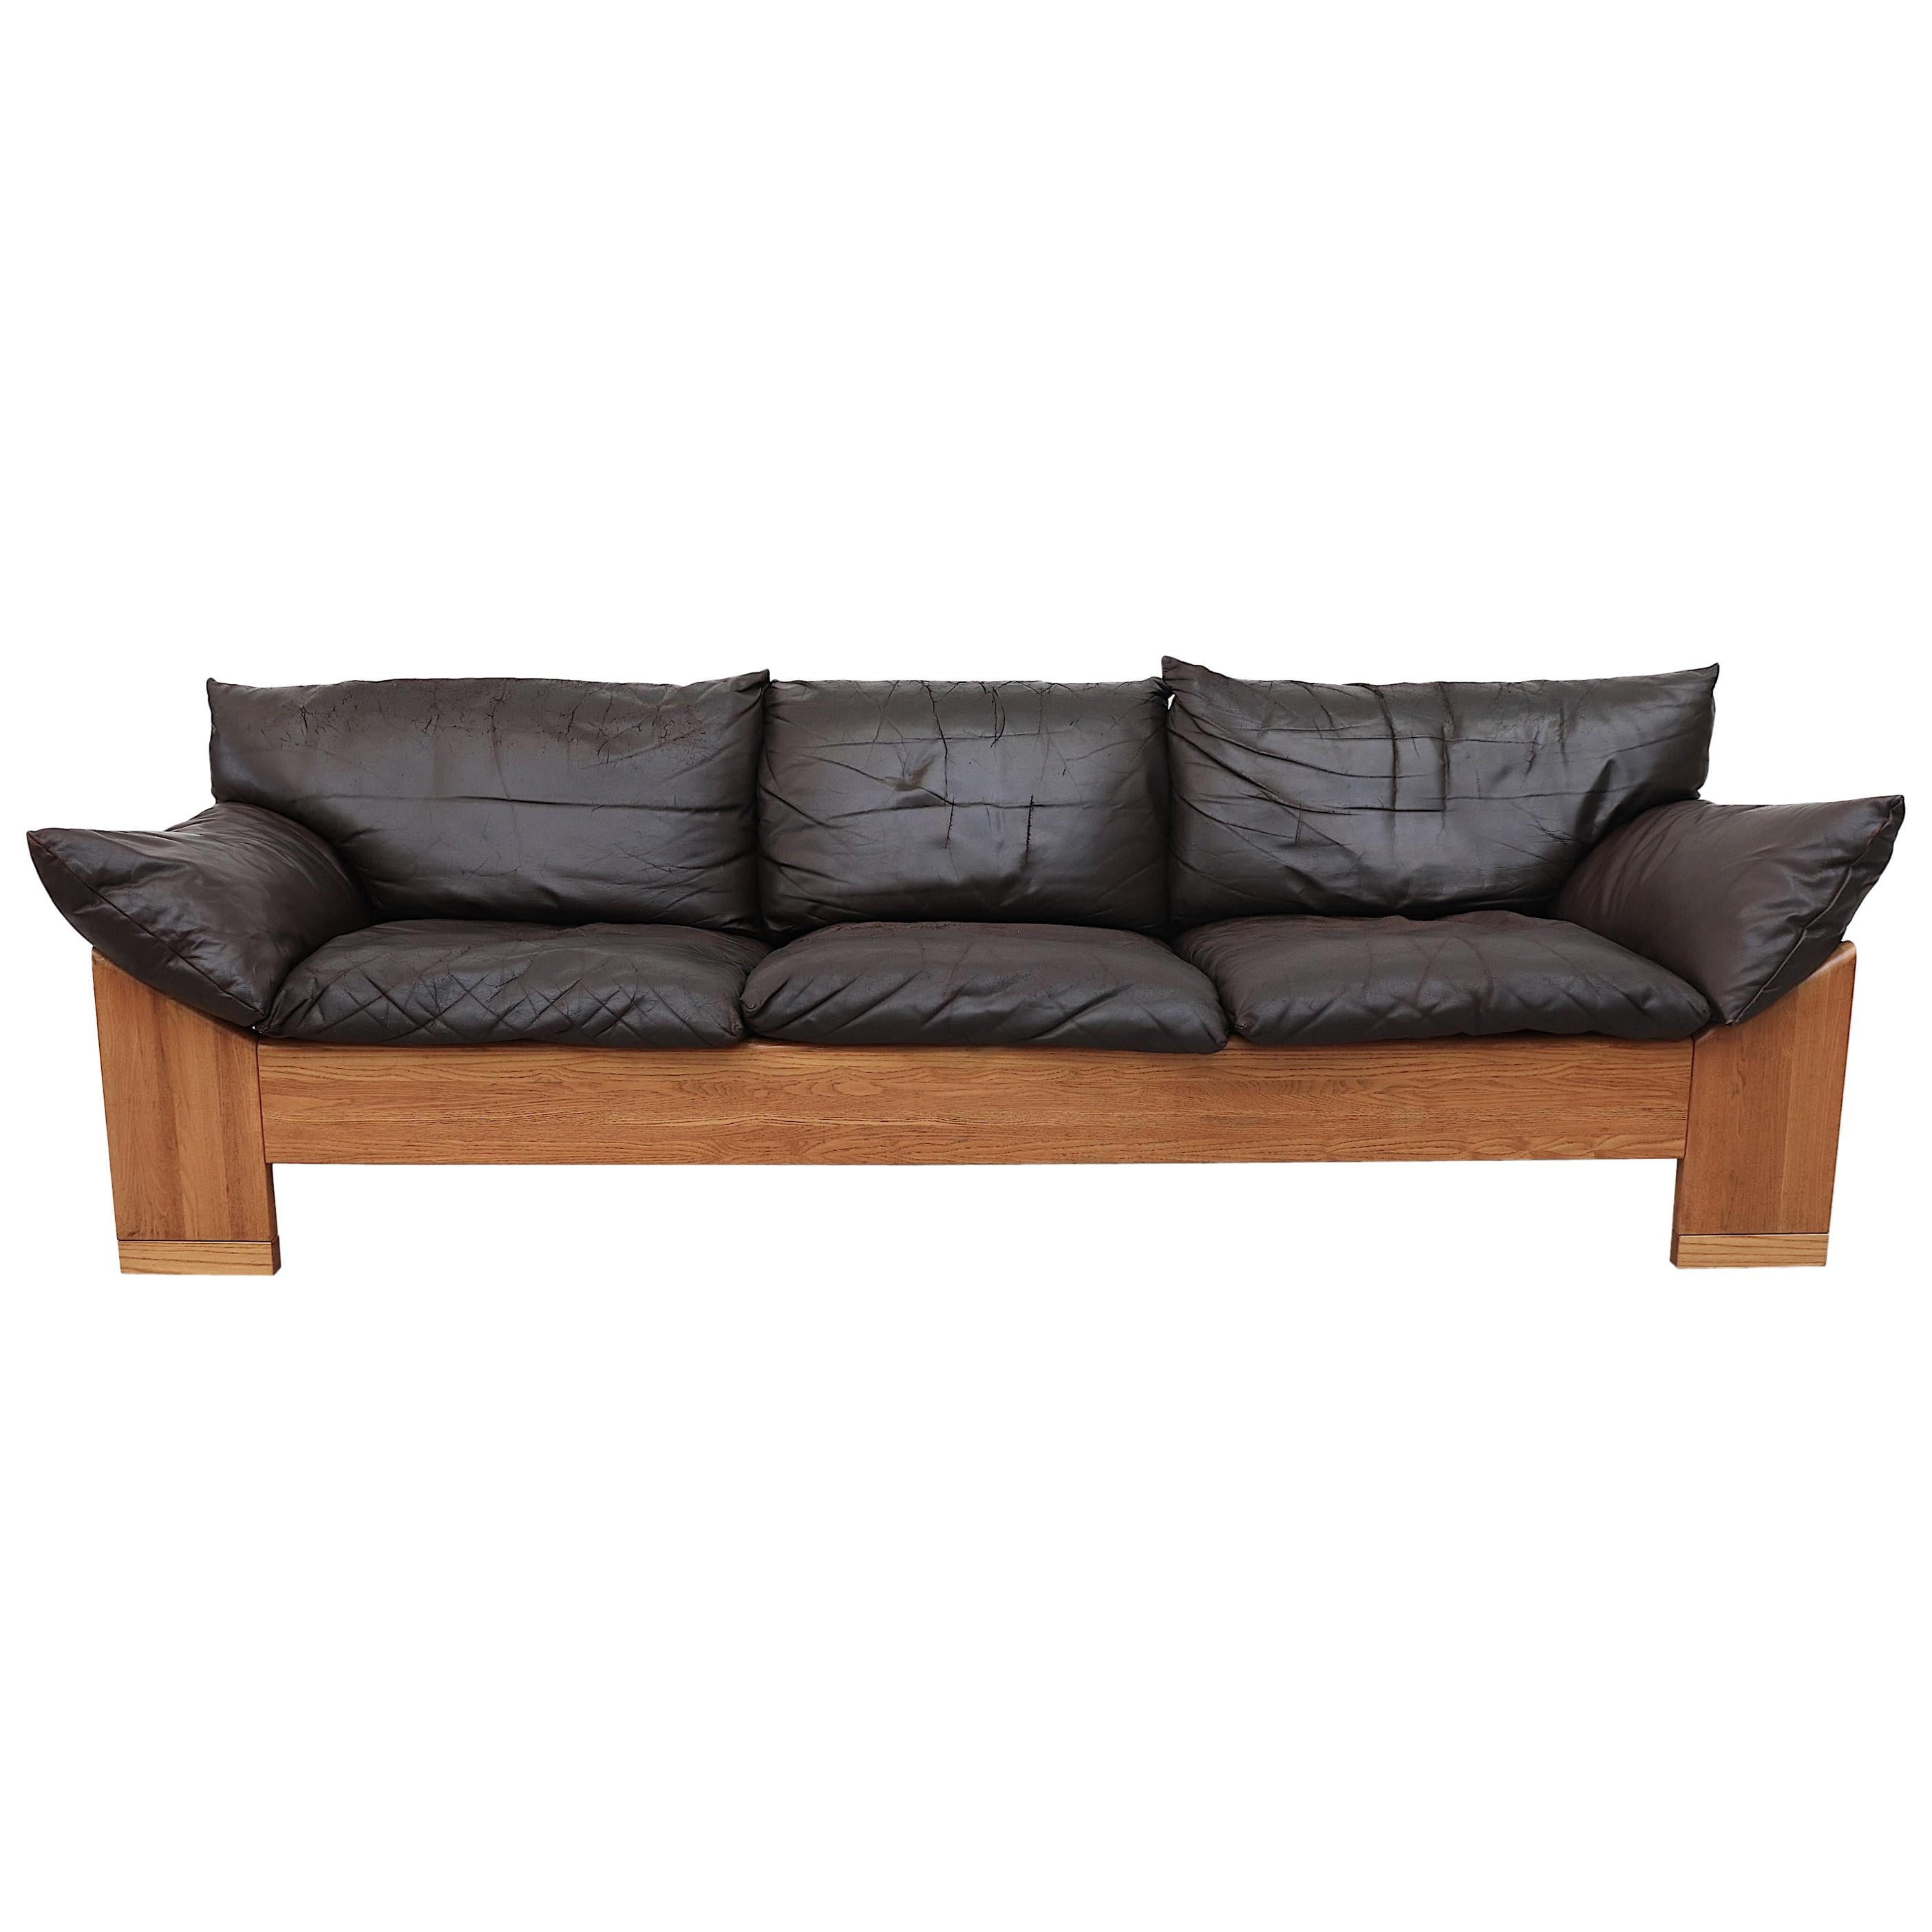 Antique and Vintage Sofas - 8,628 For Sale at 1stdibs